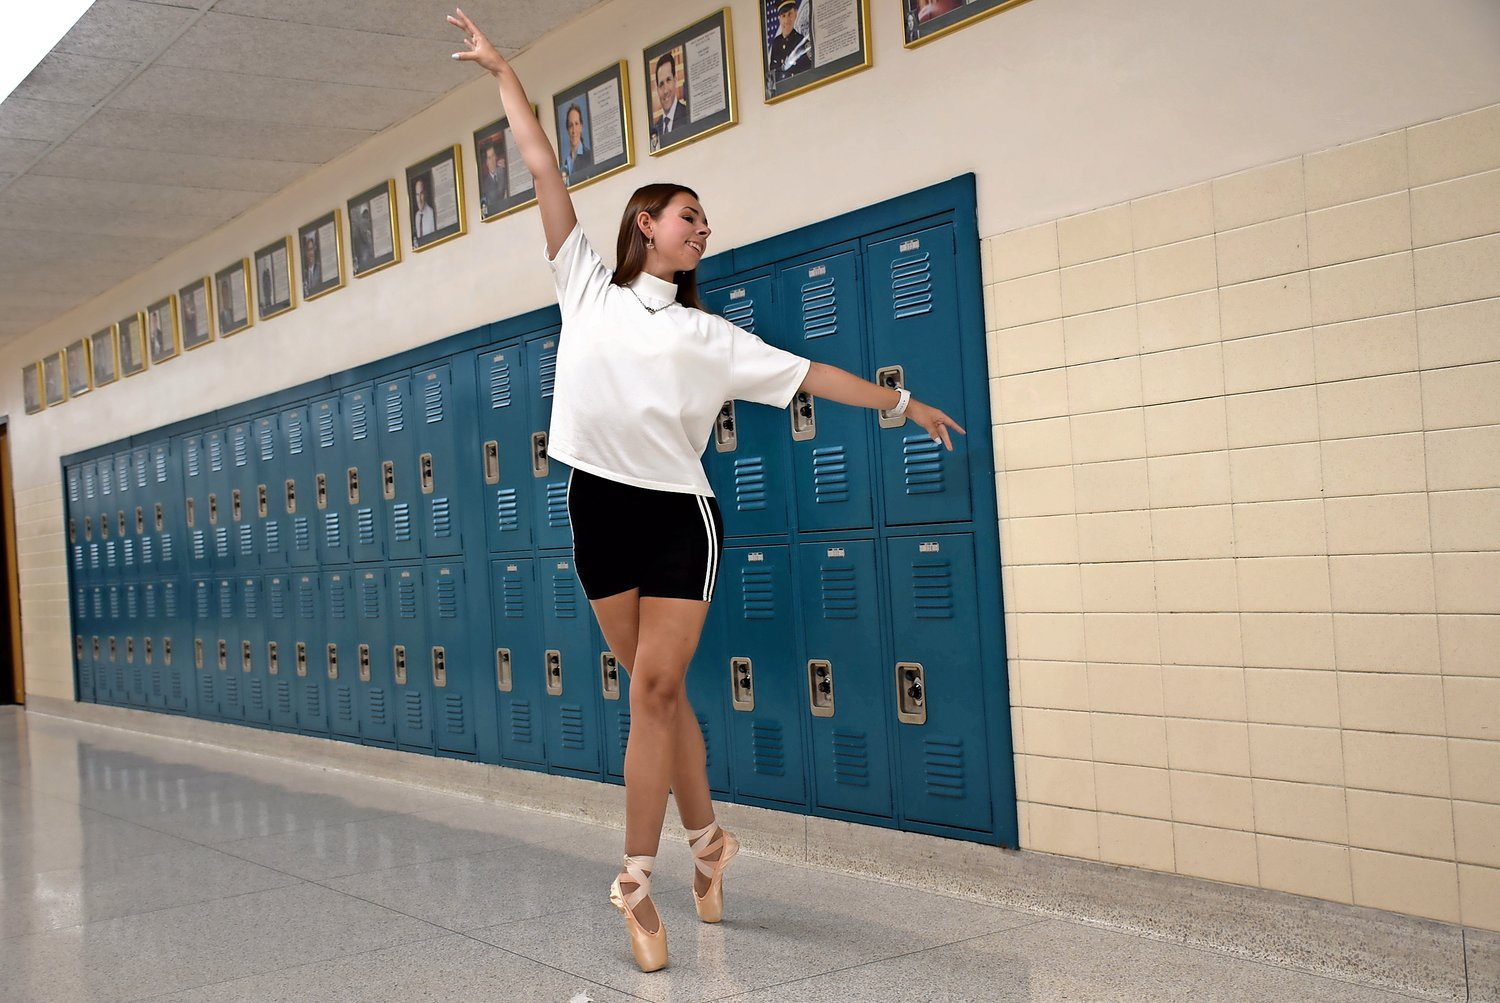 Senior Isabella Aletrakis, of Merrick, danced through the halls of John F. Kennedy High School. She was recently selected as a Long Island Scholar Artist for the 2019-20 school year.